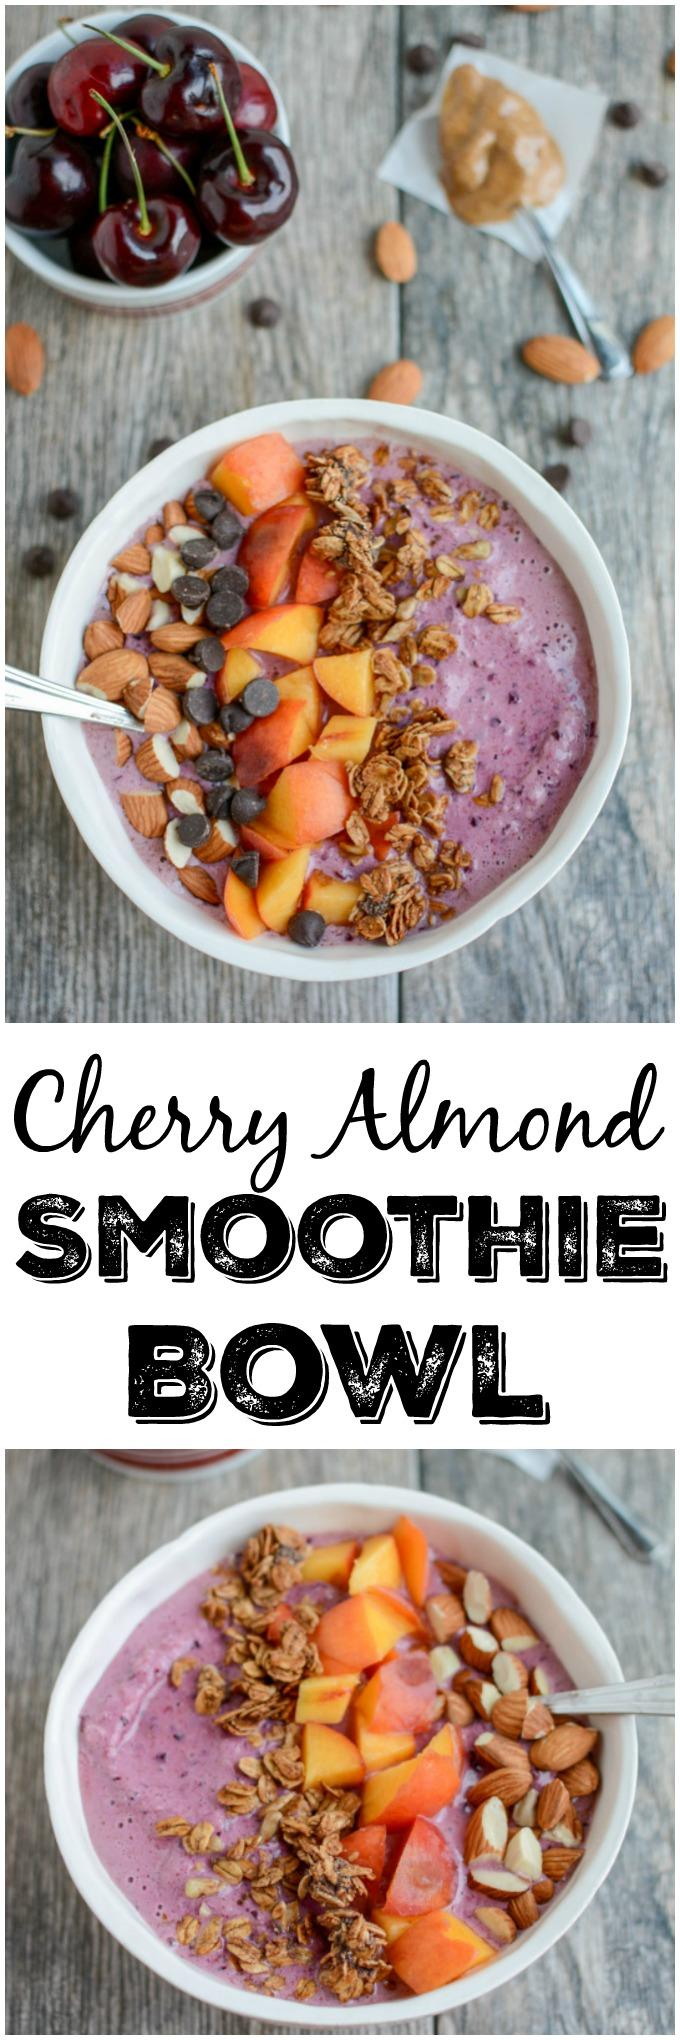 This Cherry Almond Smoothie Bowl recipe is full of healthy fats and protein for a healthy breakfast or snack on a hot day. Top with granola and nuts for an added crunch and dig in with a spoon!